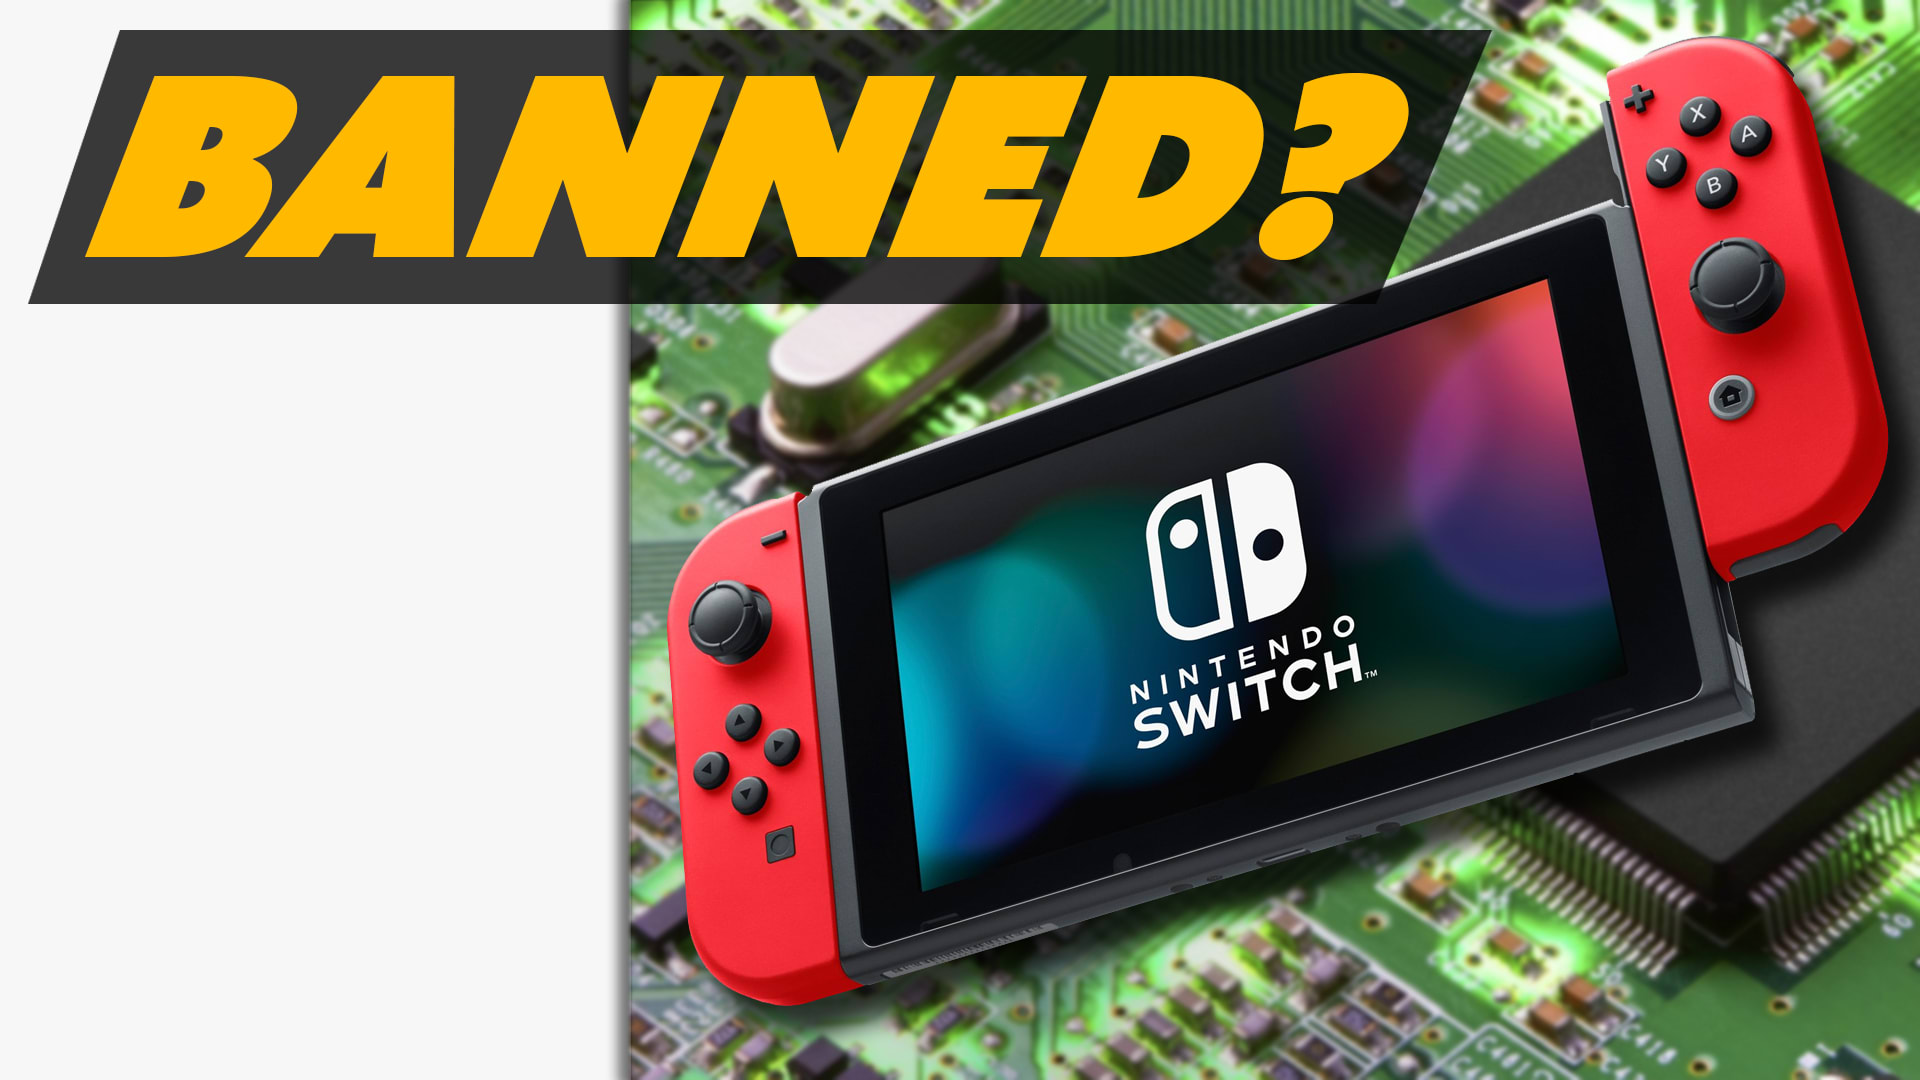 Switch to be BANNED in the US? - Rooster Teeth